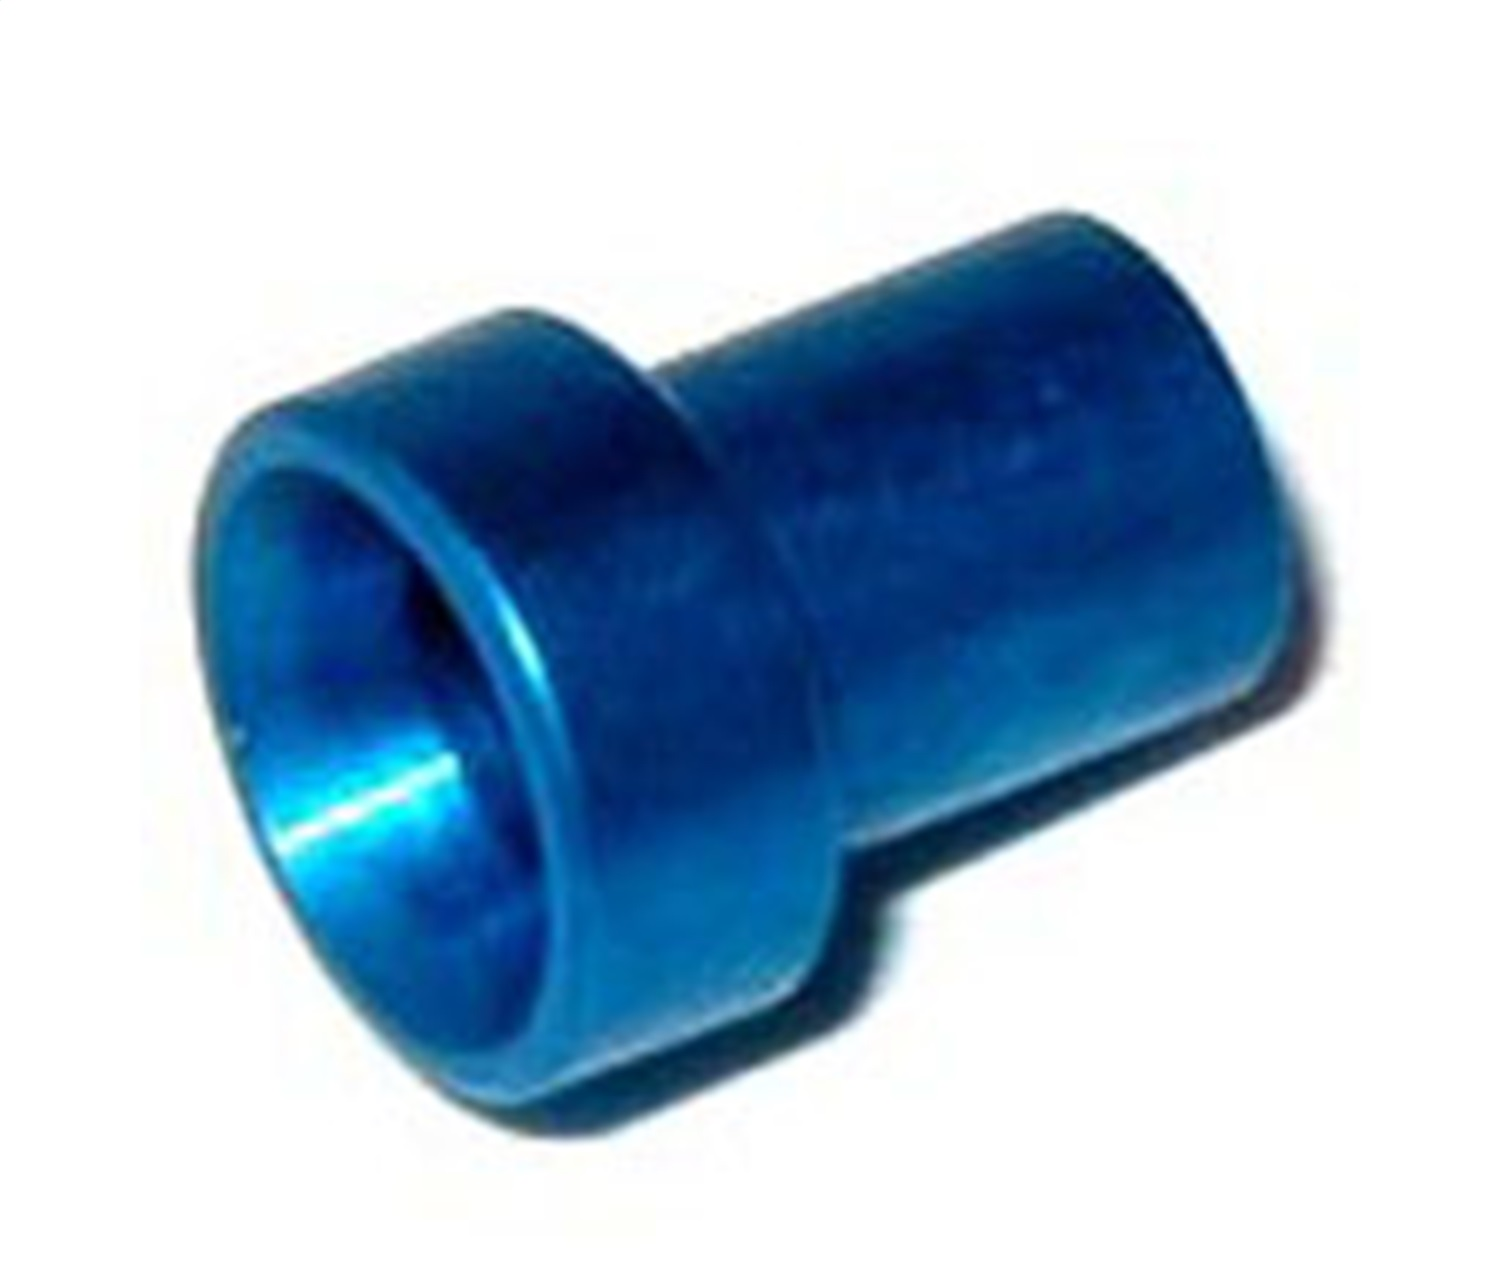 NOS 17600NOS Pipe Fitting Tube Sleeve